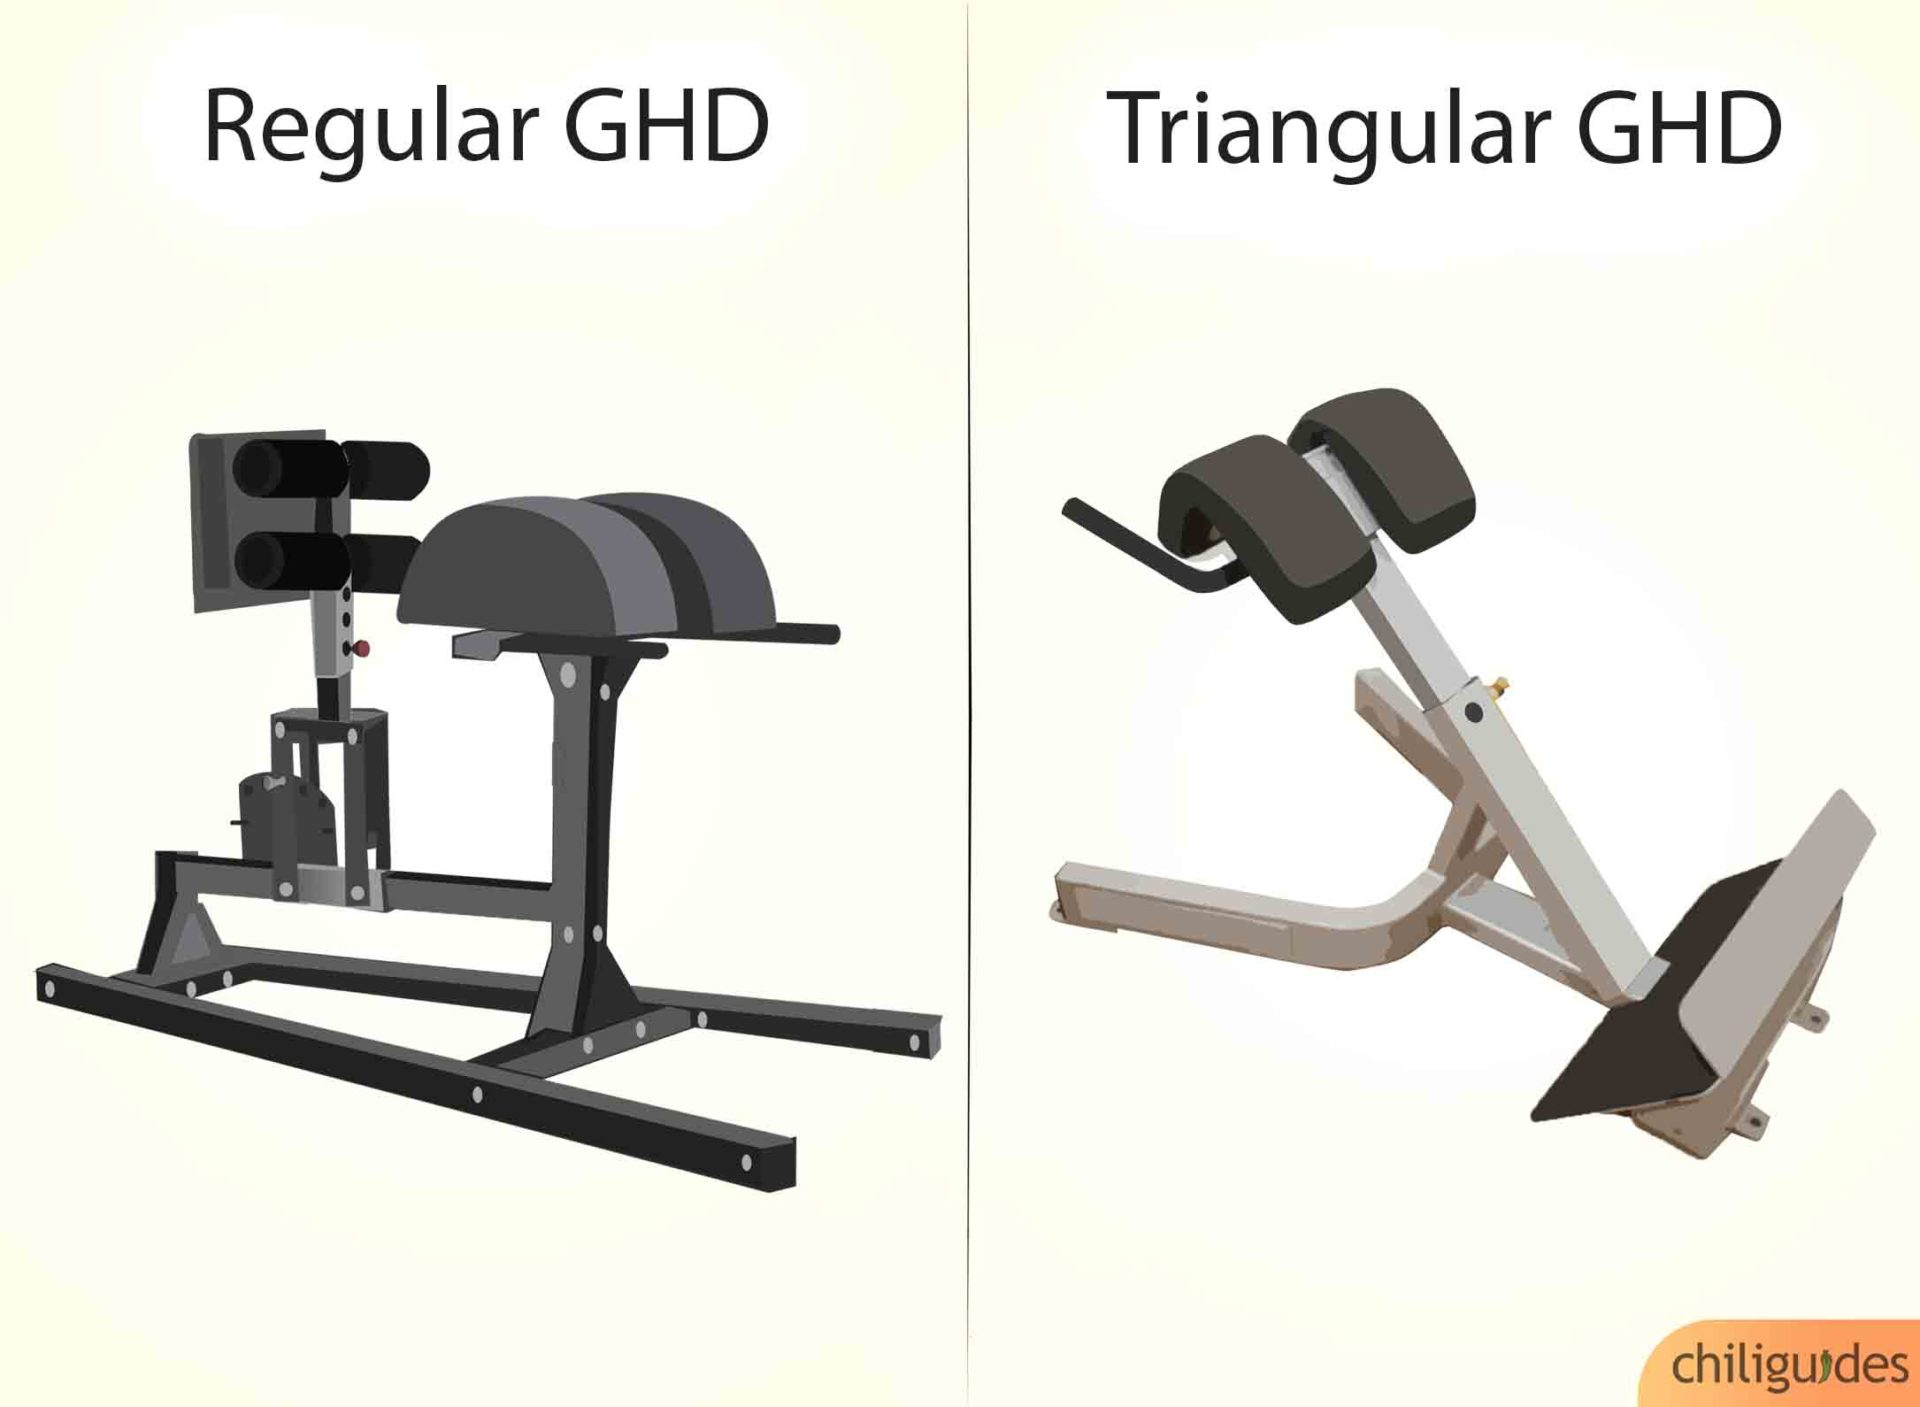 If you're short on space, choose a triangular GHD.